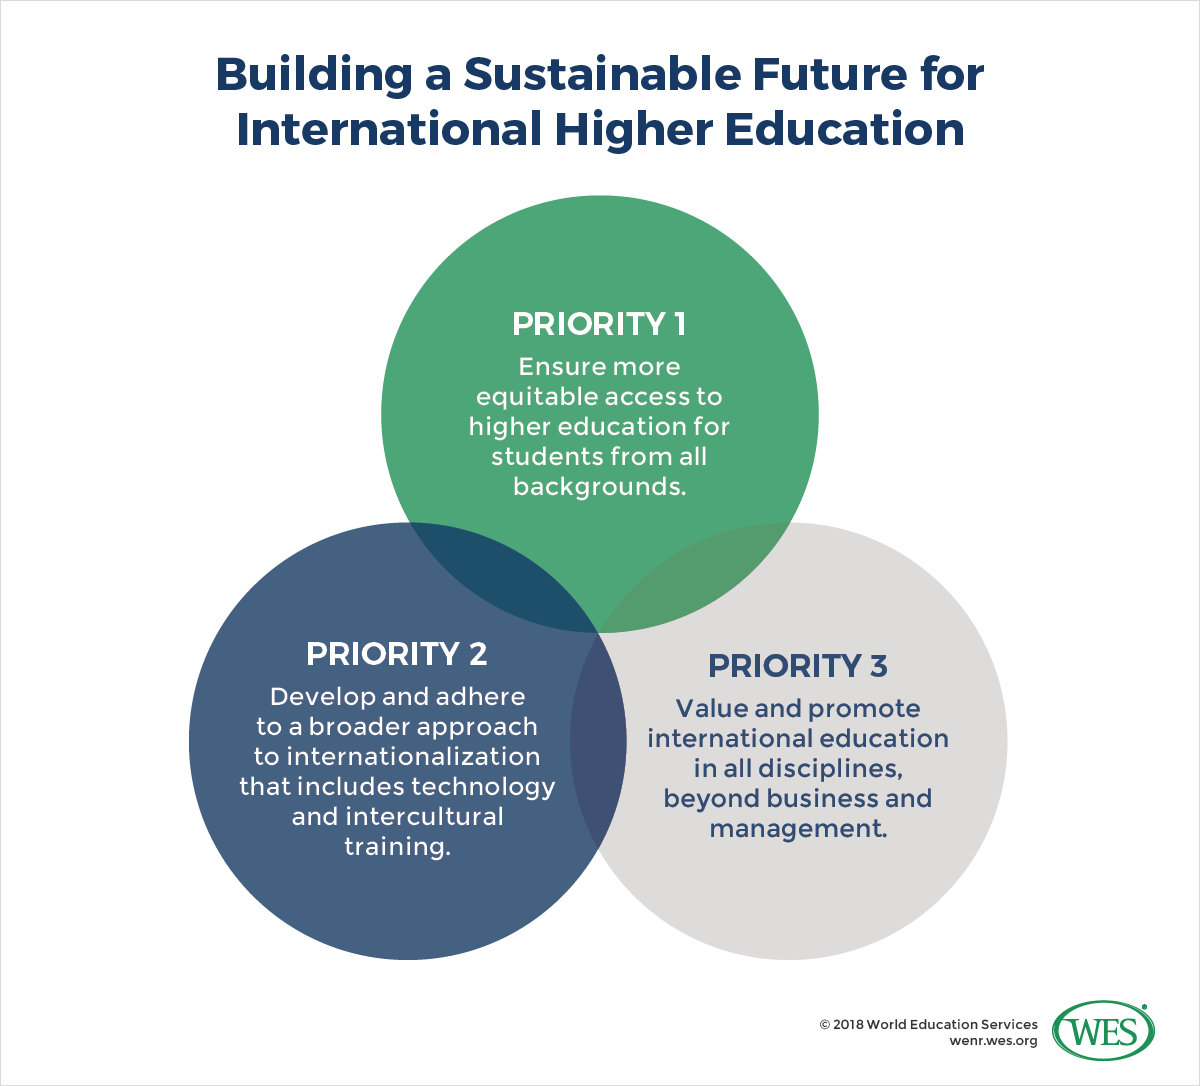 Sustainable Development Goals: a New Framework for the Future of International Higher Education?